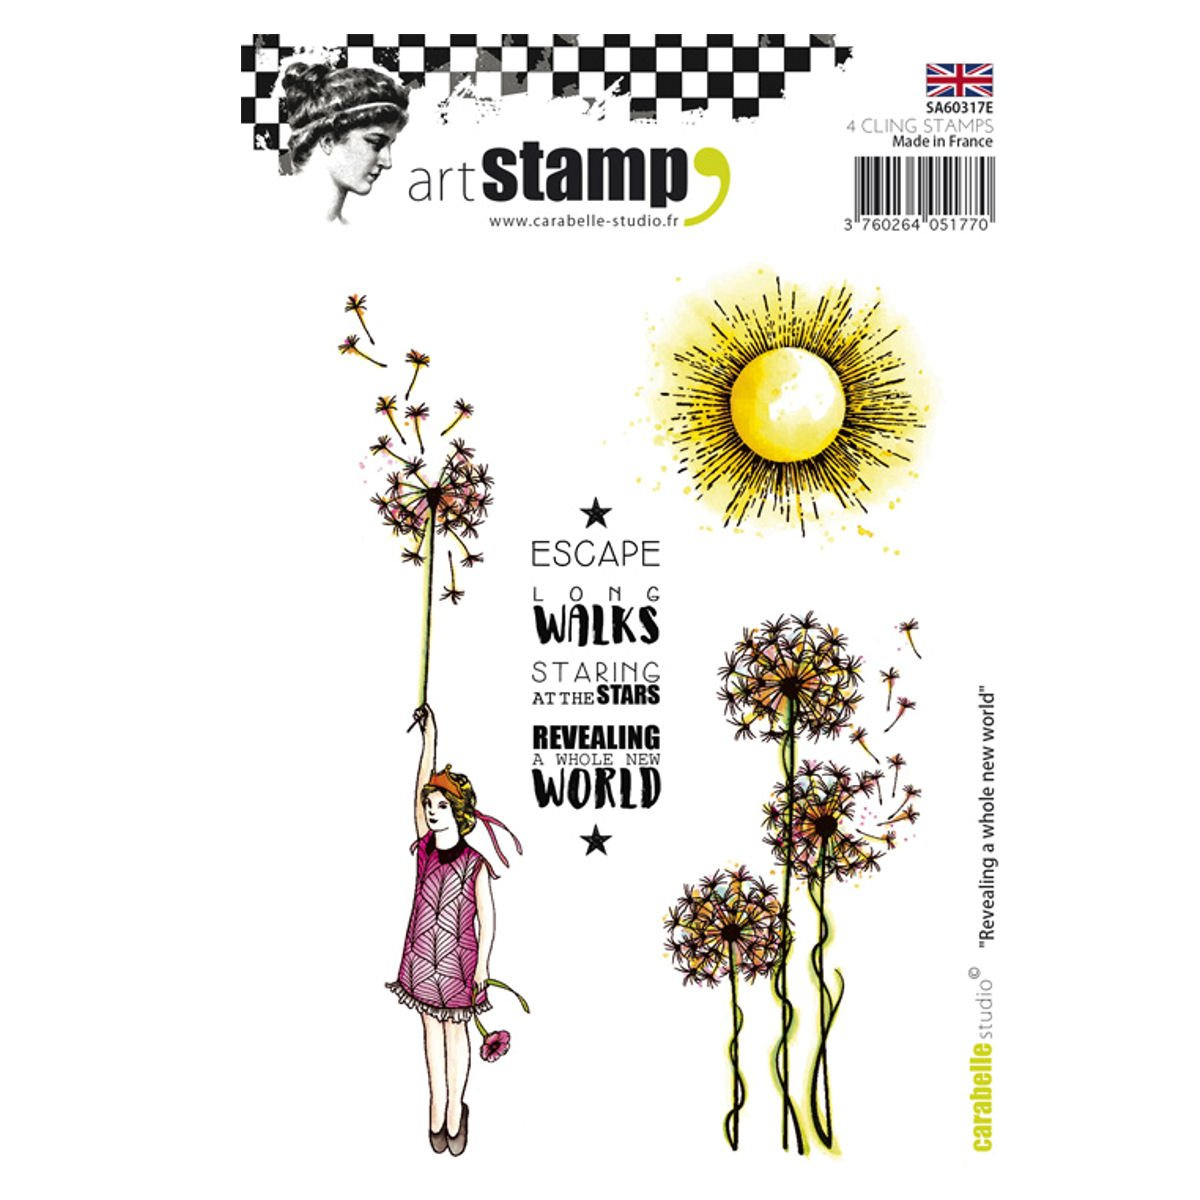 Carabelle Studio Revealing A Whole New World Cling Stamp A6